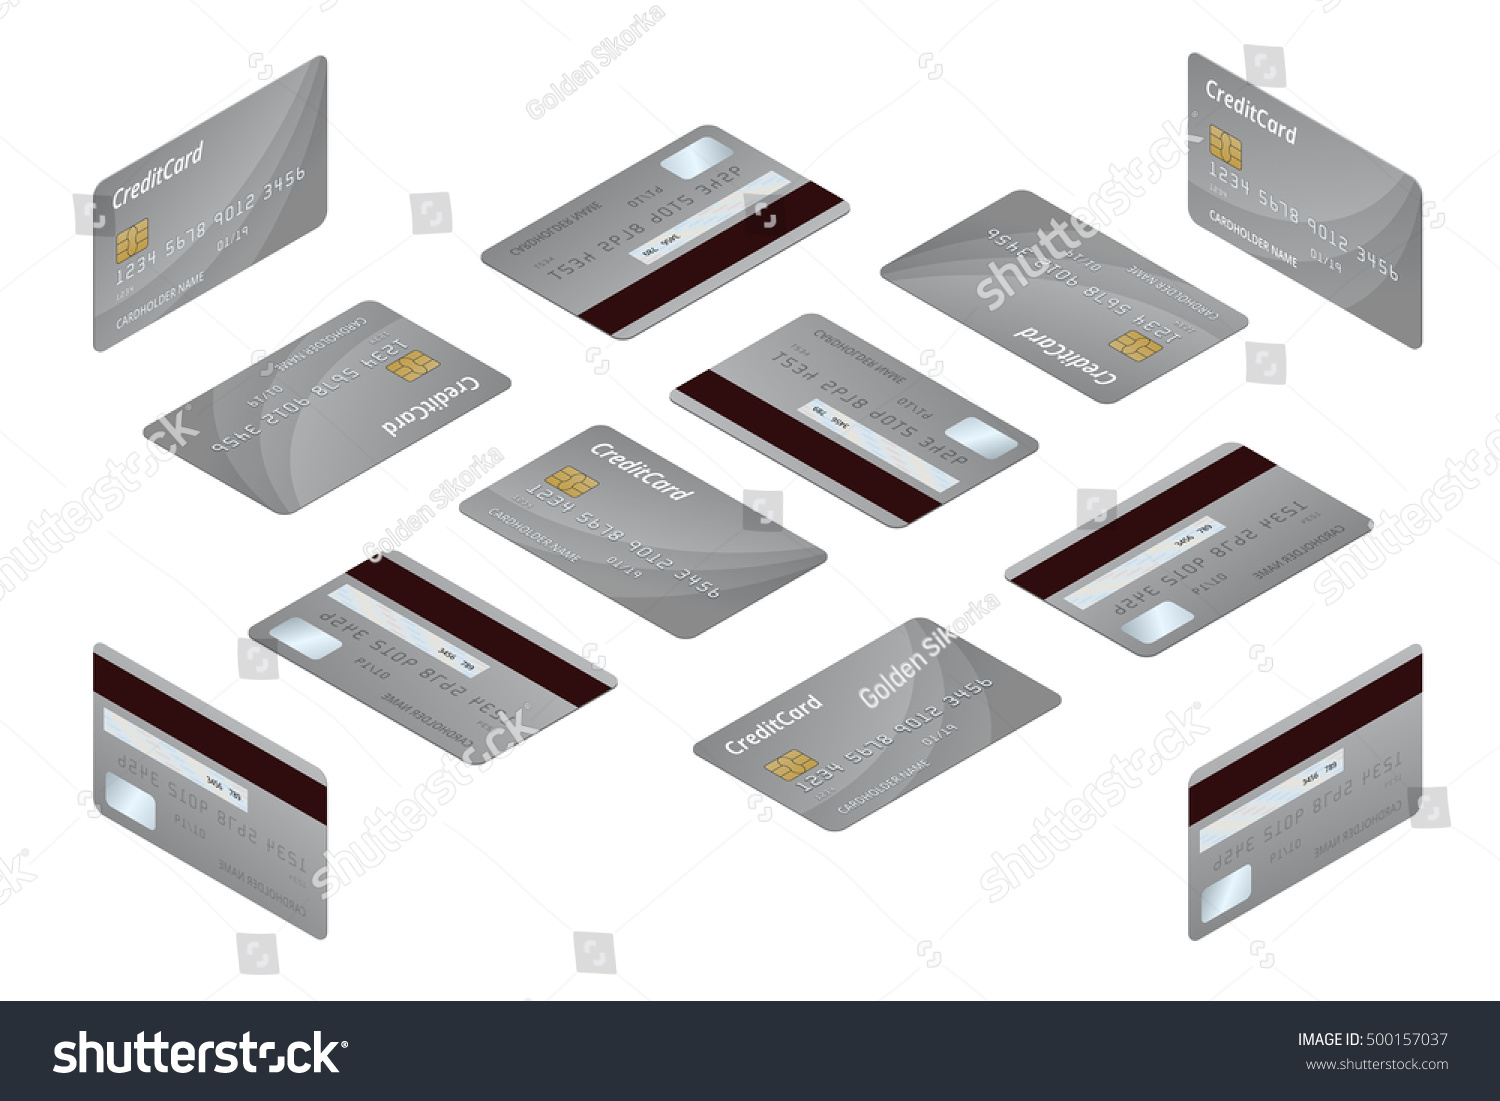 Credit Cards Isometric Money Business Card Stock Illustration ...